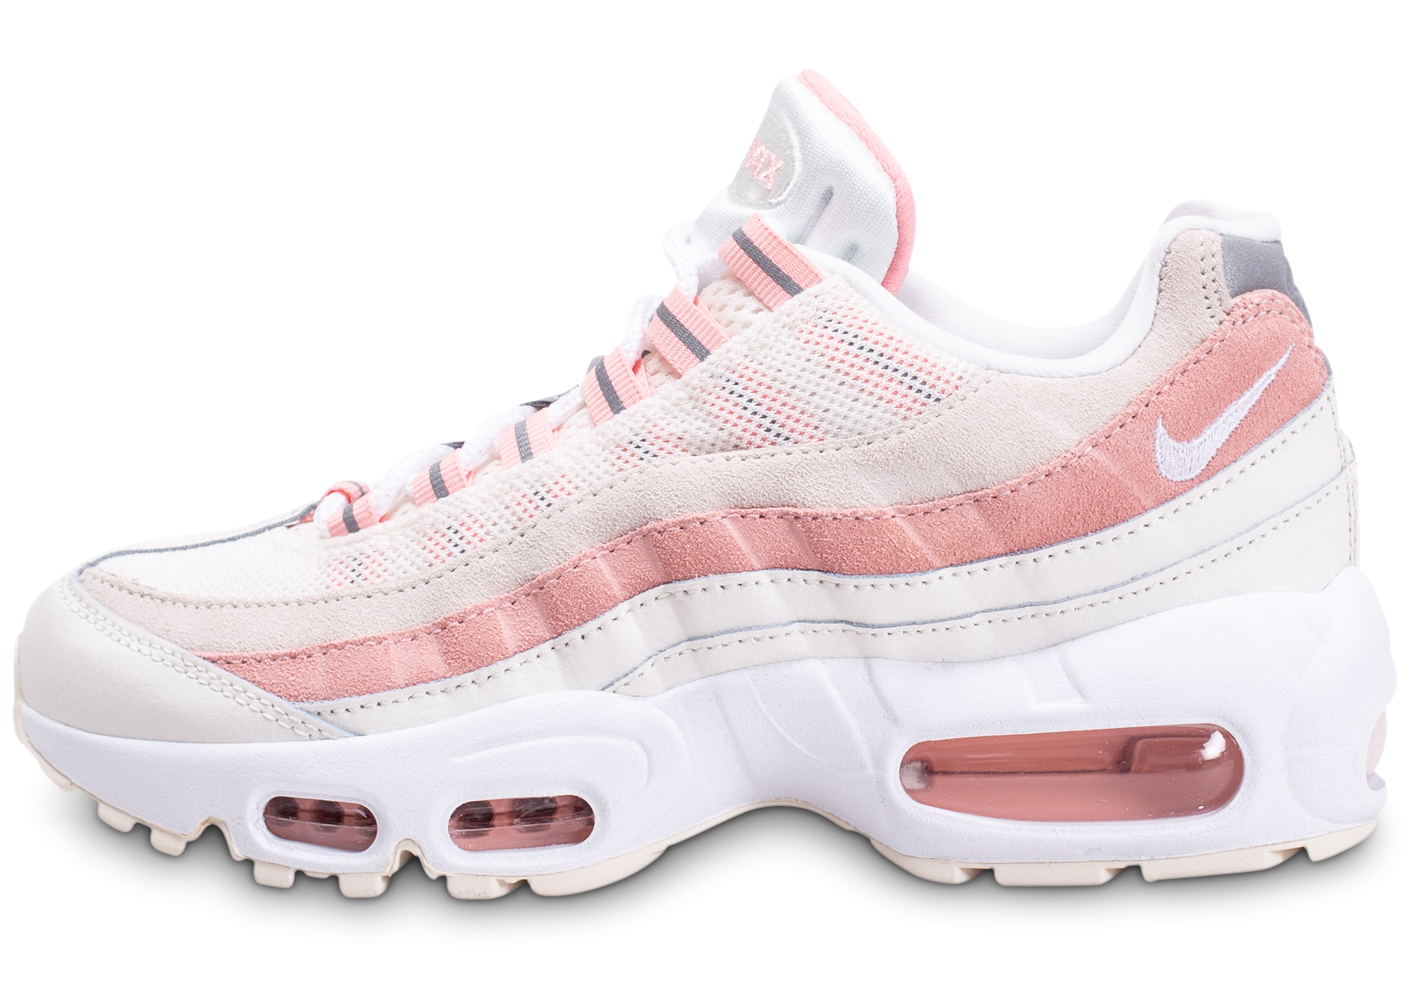 nike 95 femmes chaussures